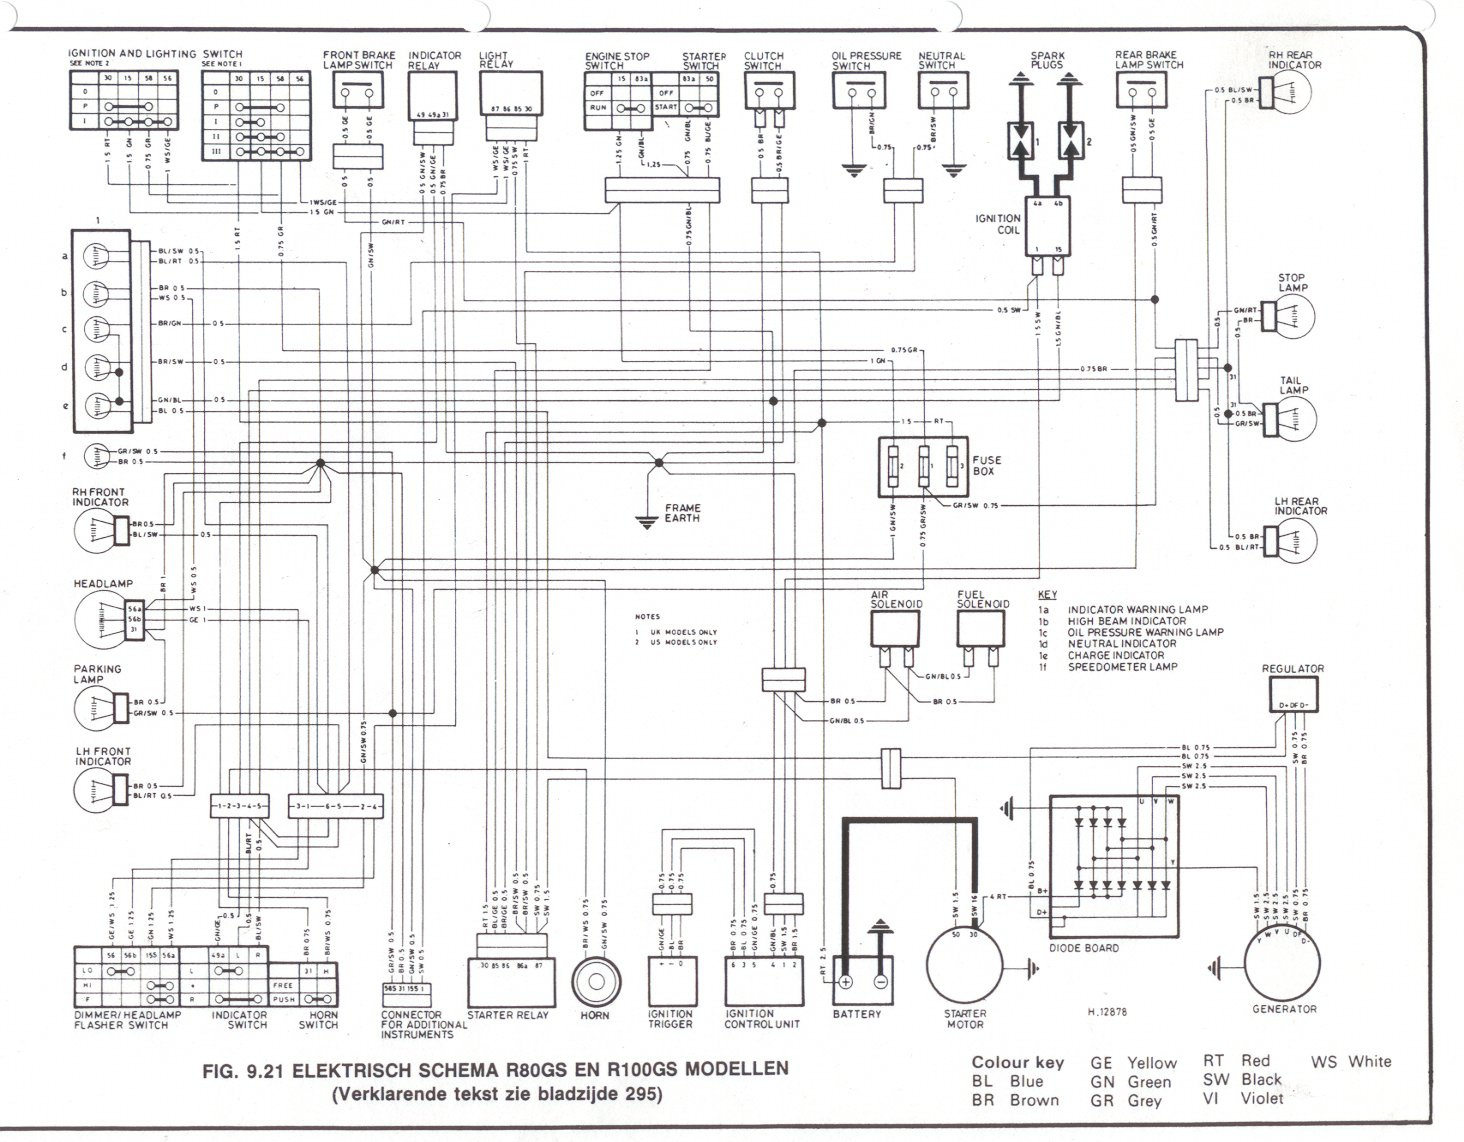 R80 100GS Schematic bmw r100 info thiel org za bmw r100rs gauge wiring diagram at mifinder.co